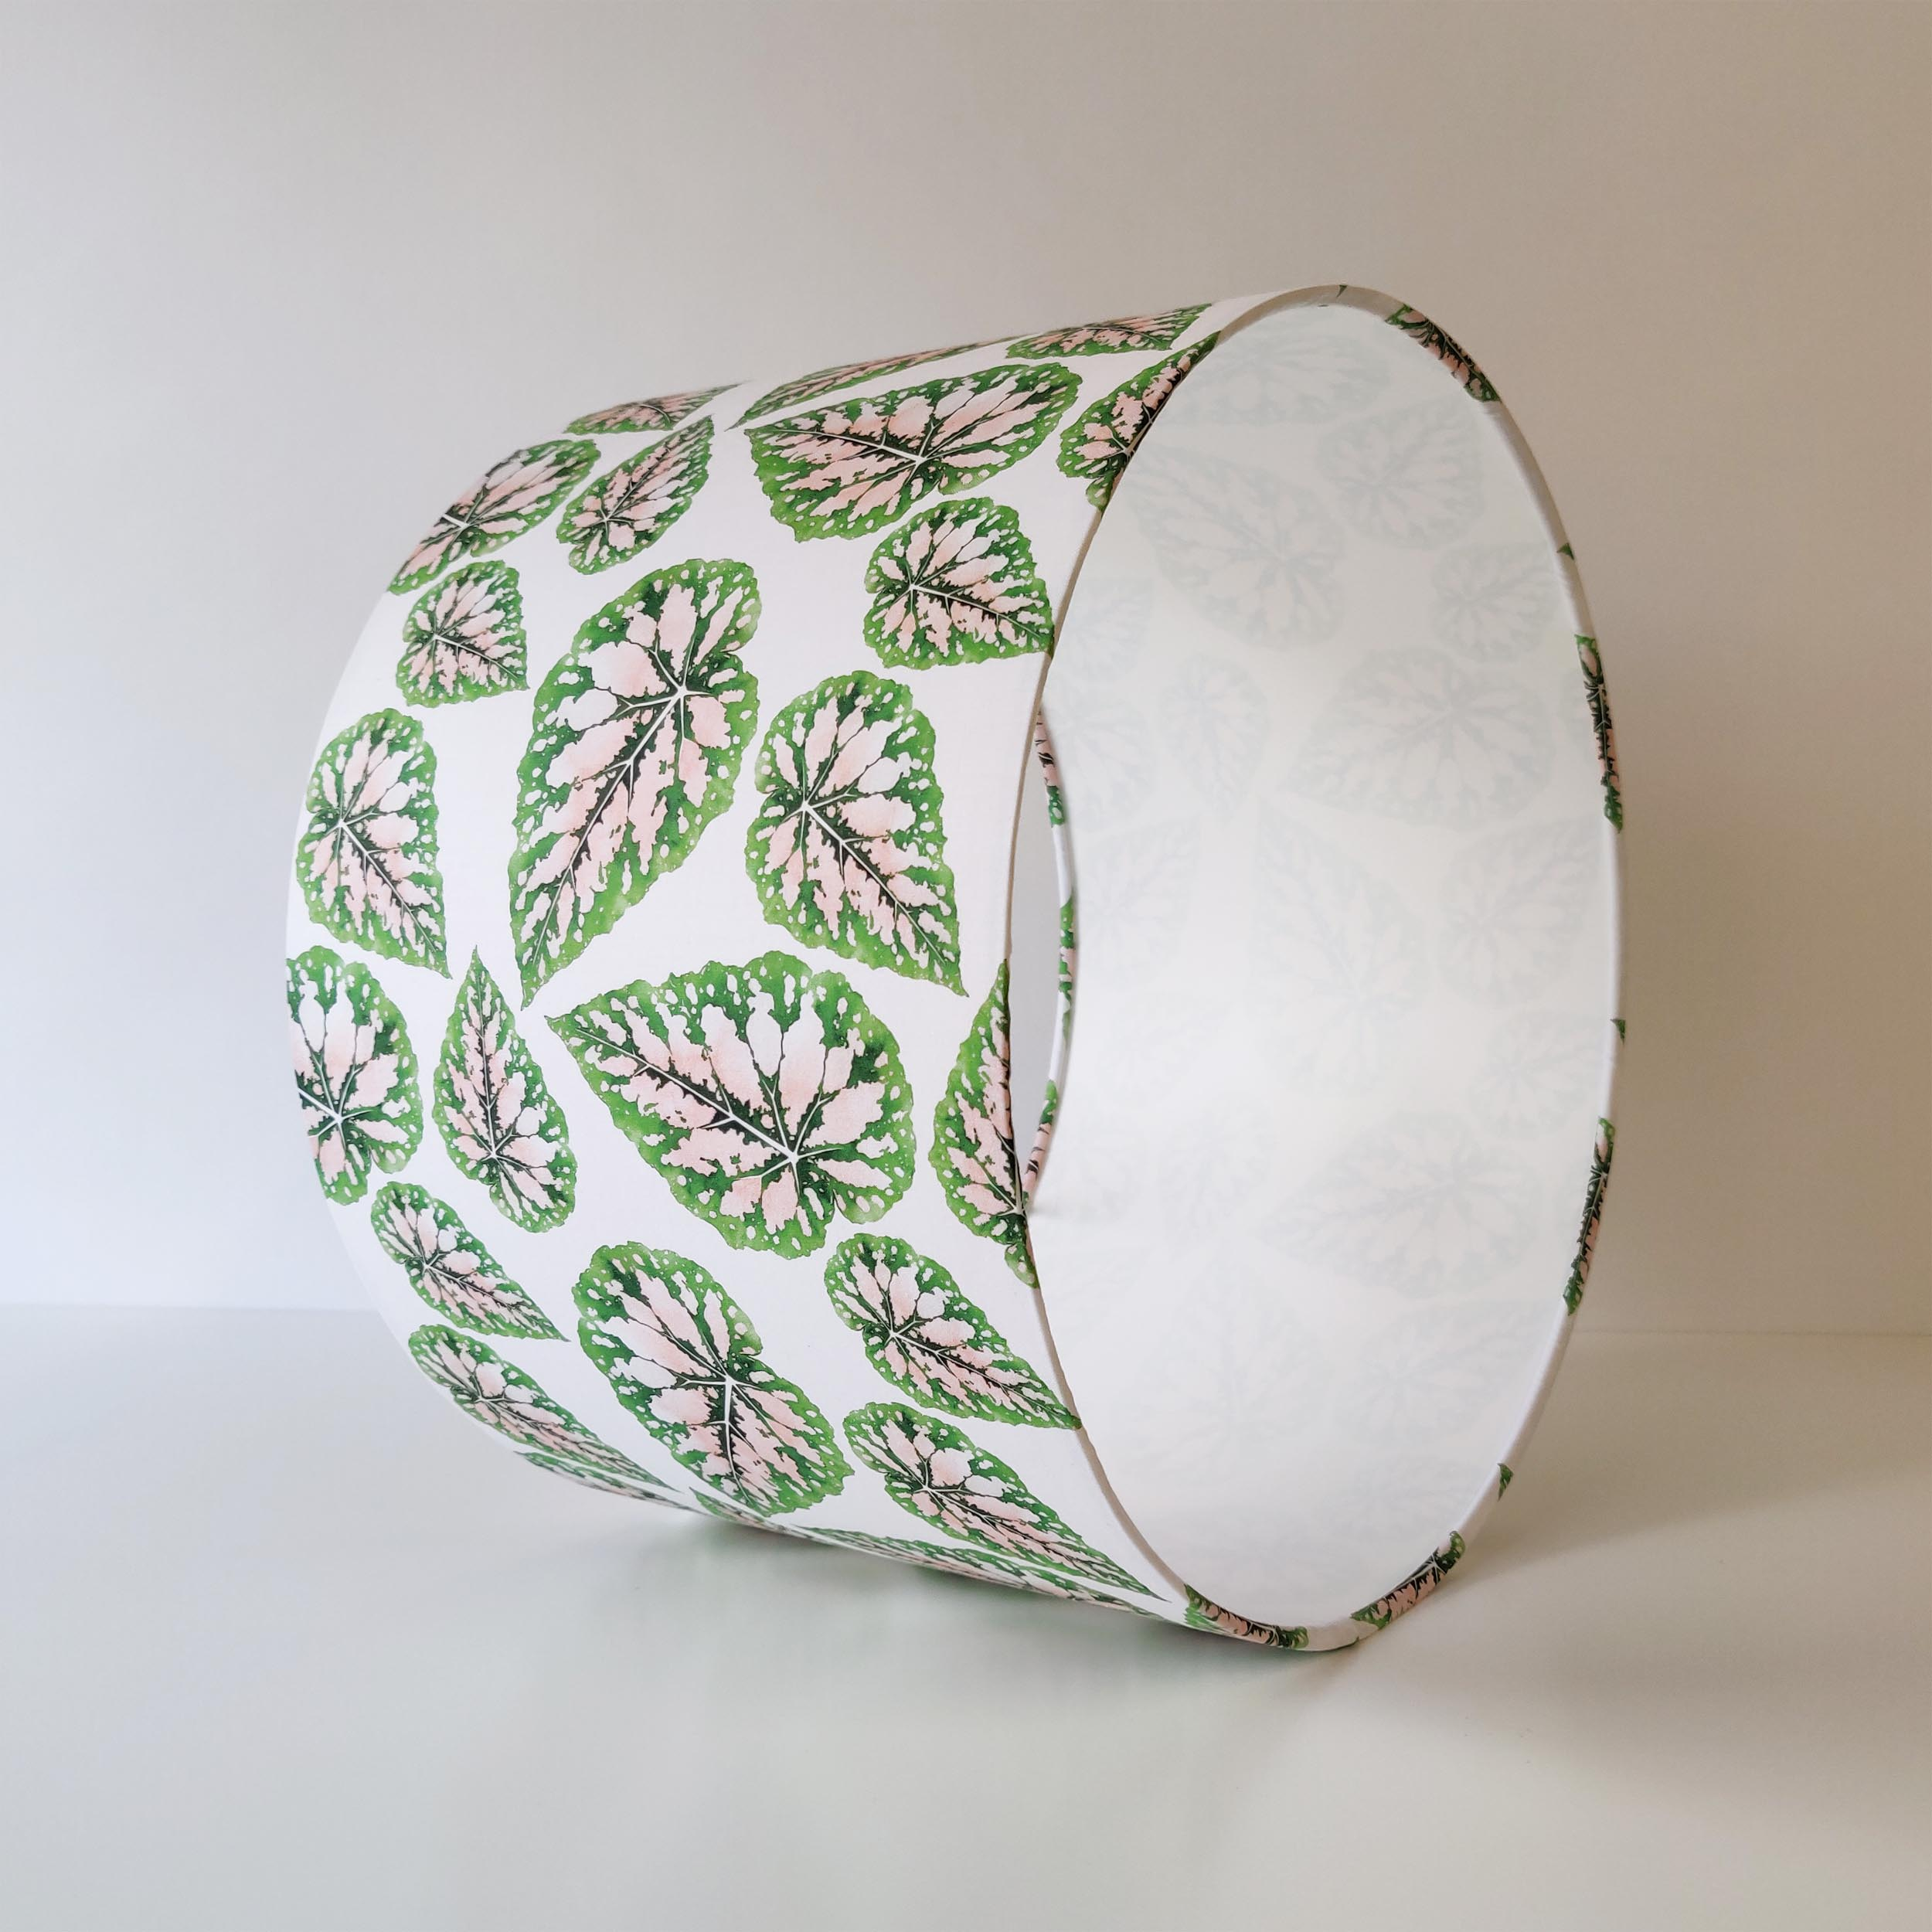 Green Leaves Lampshade in a White and Pink Fabric